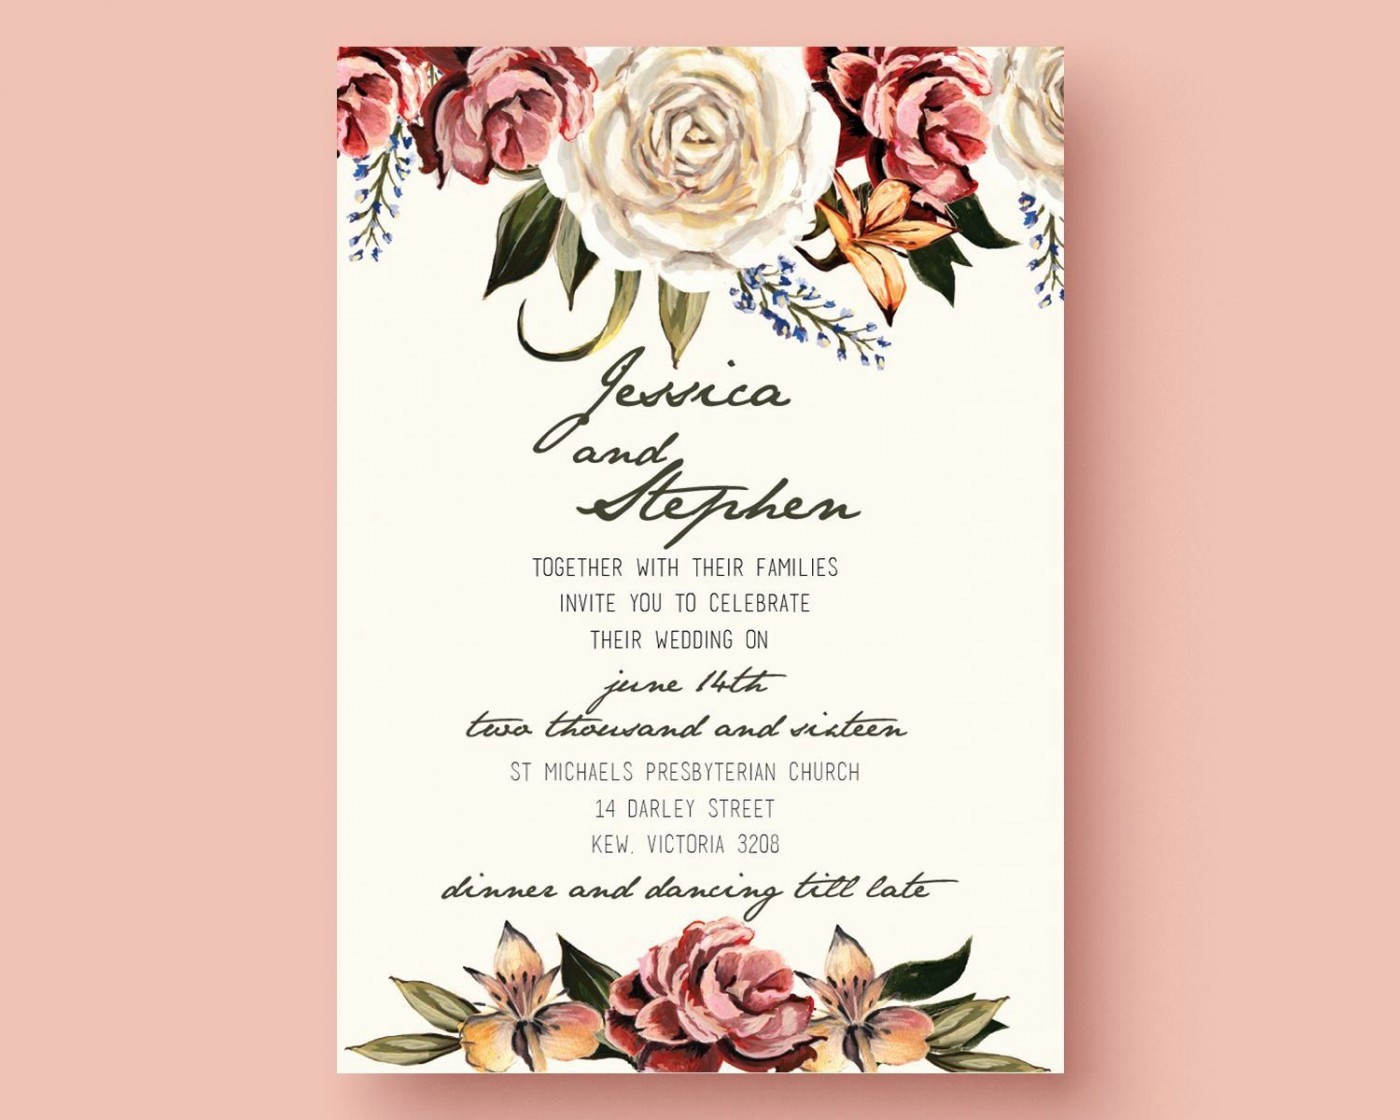 001 Outstanding Printable Wedding Invitation Template Highest Quality  Free For Microsoft Word Vintage1400